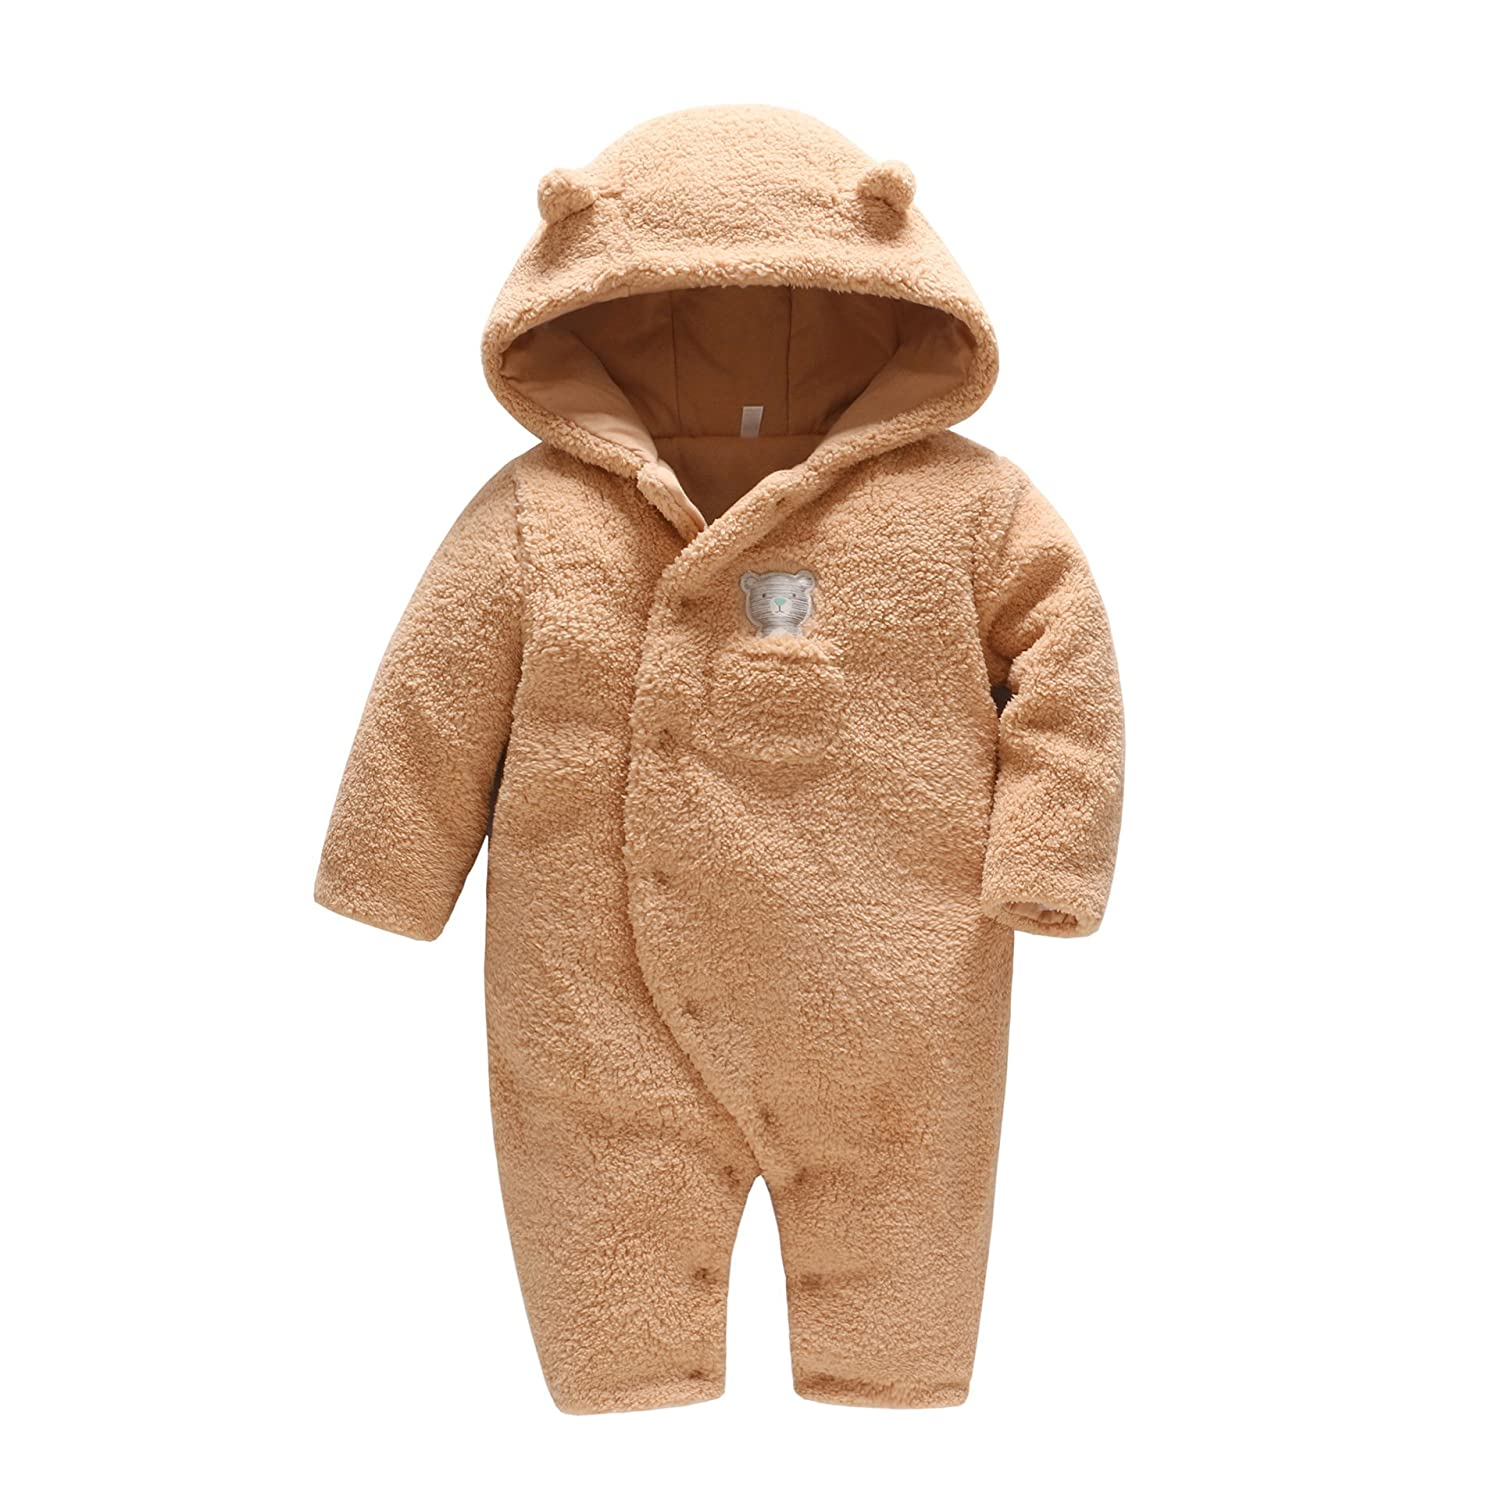 823a5ced06fb Babies Newborn baby clothes bear onesie baby girl boy rompers hooded ...